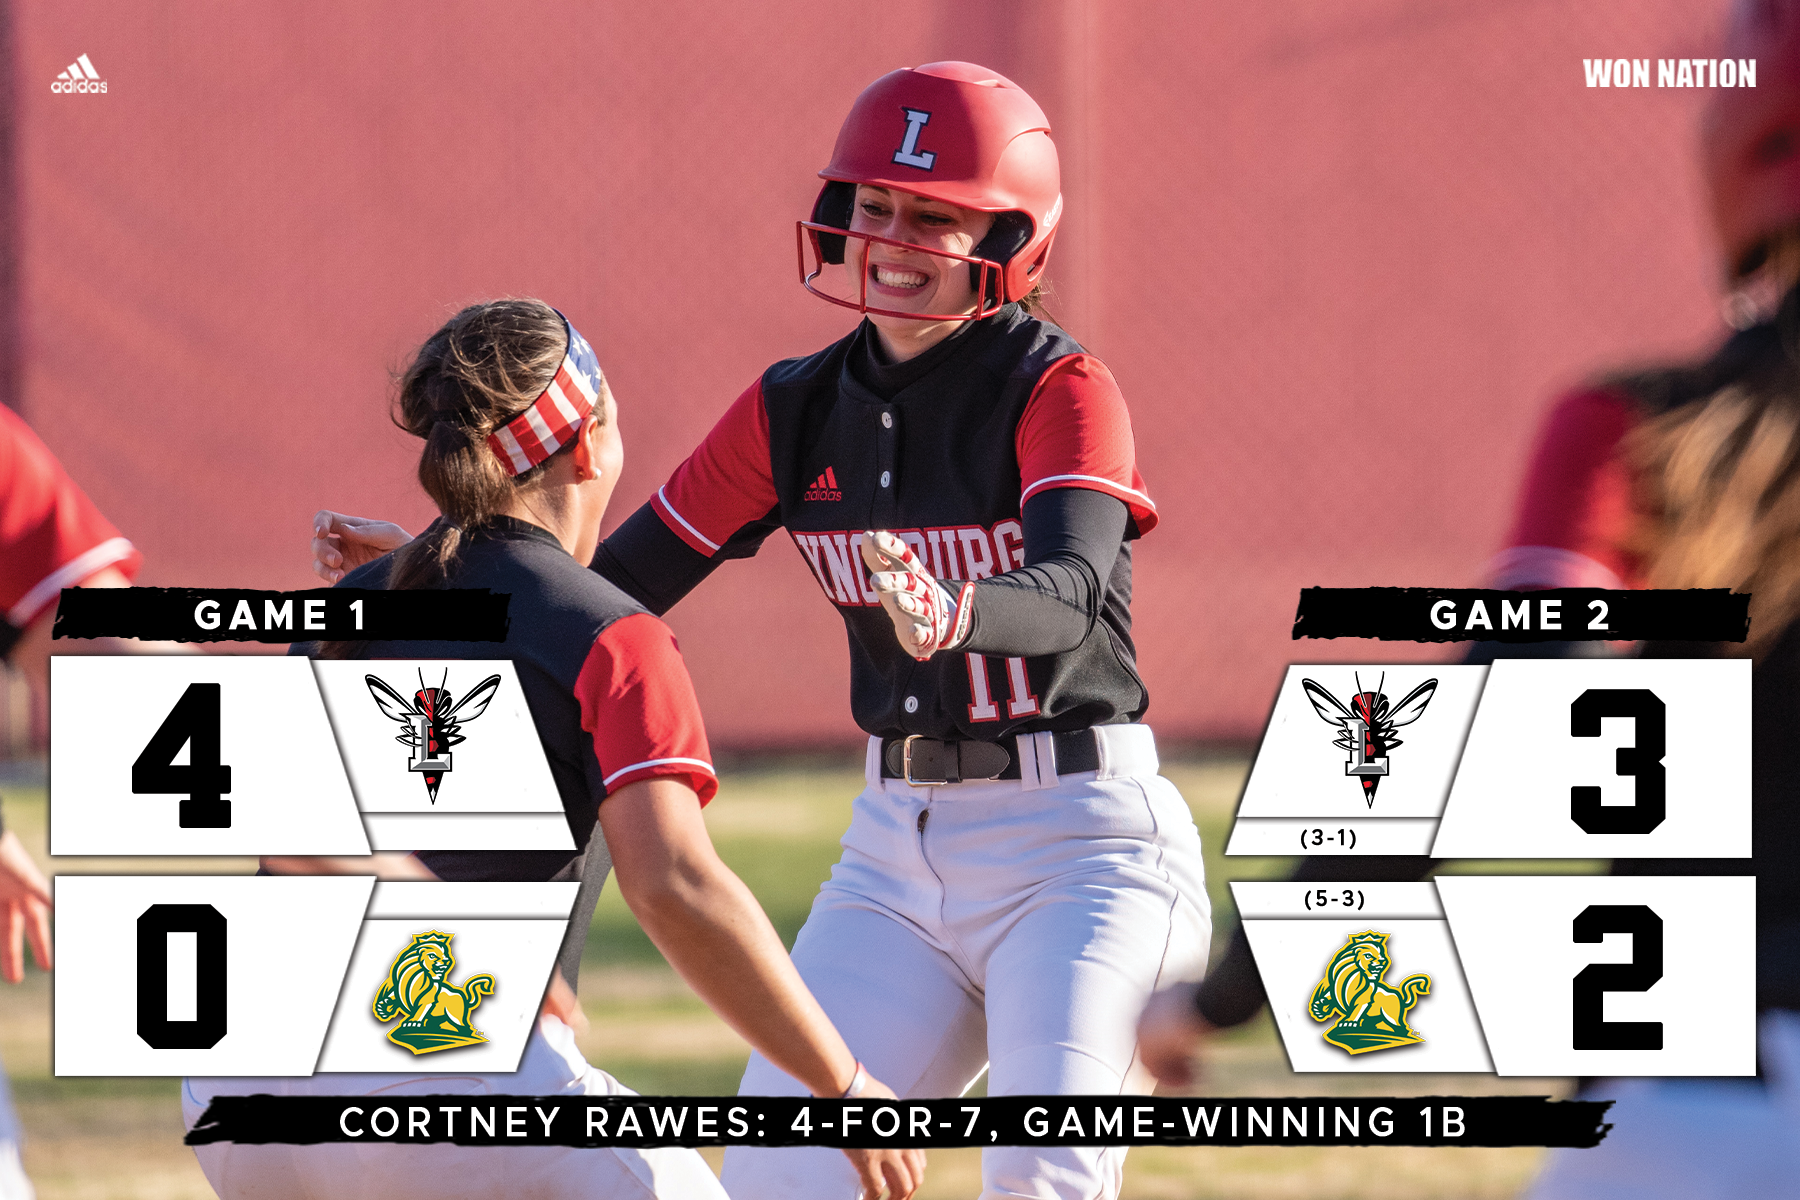 Cortney Rawes celebrates a game-winning hit with teammates